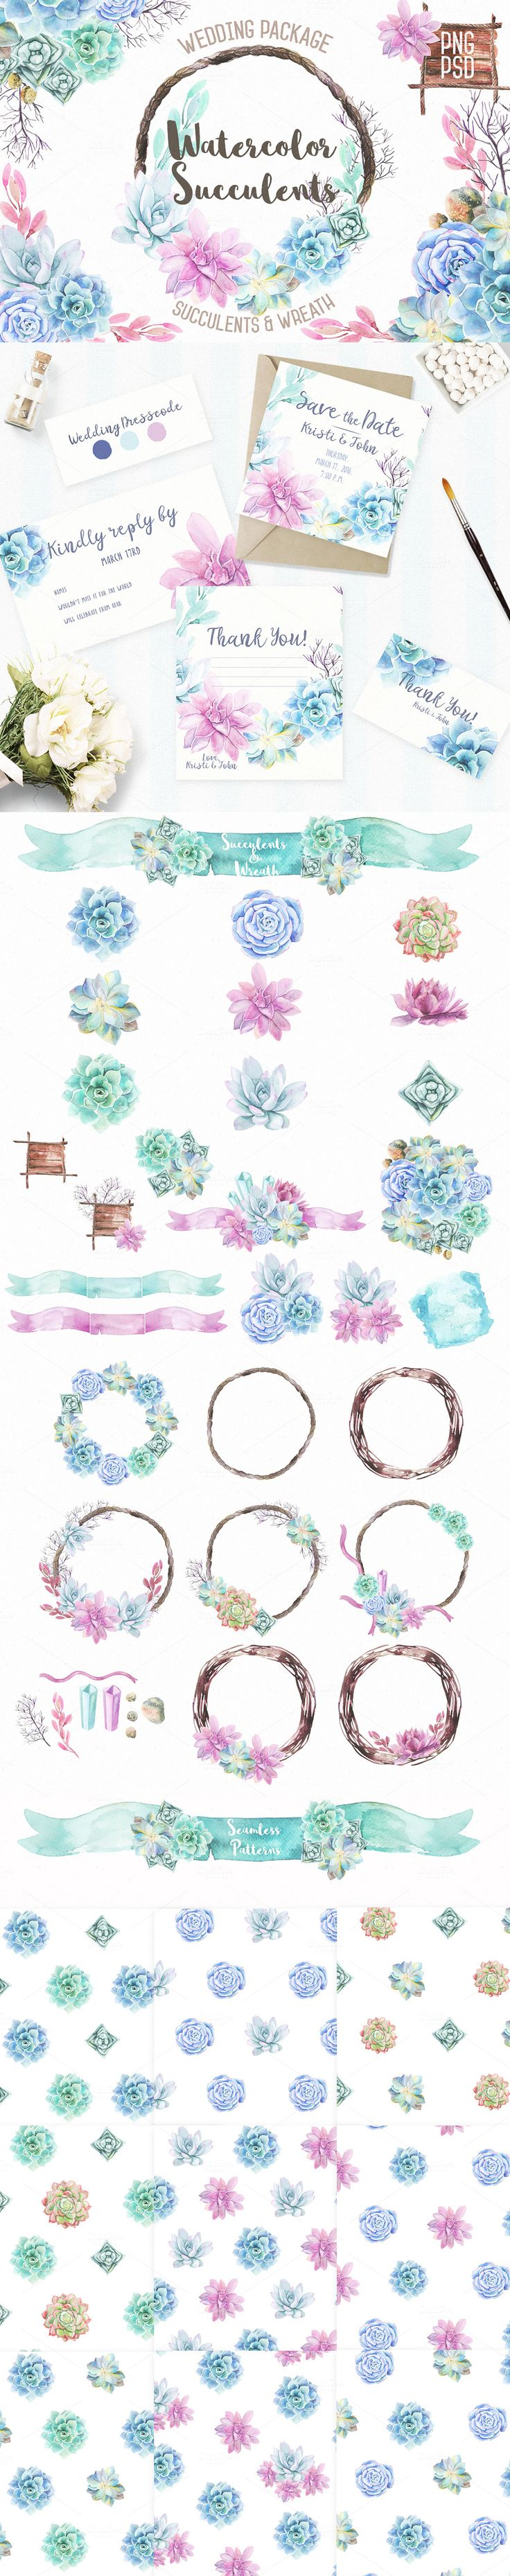 #Watercolor Succulents & Wreath #Illustrations